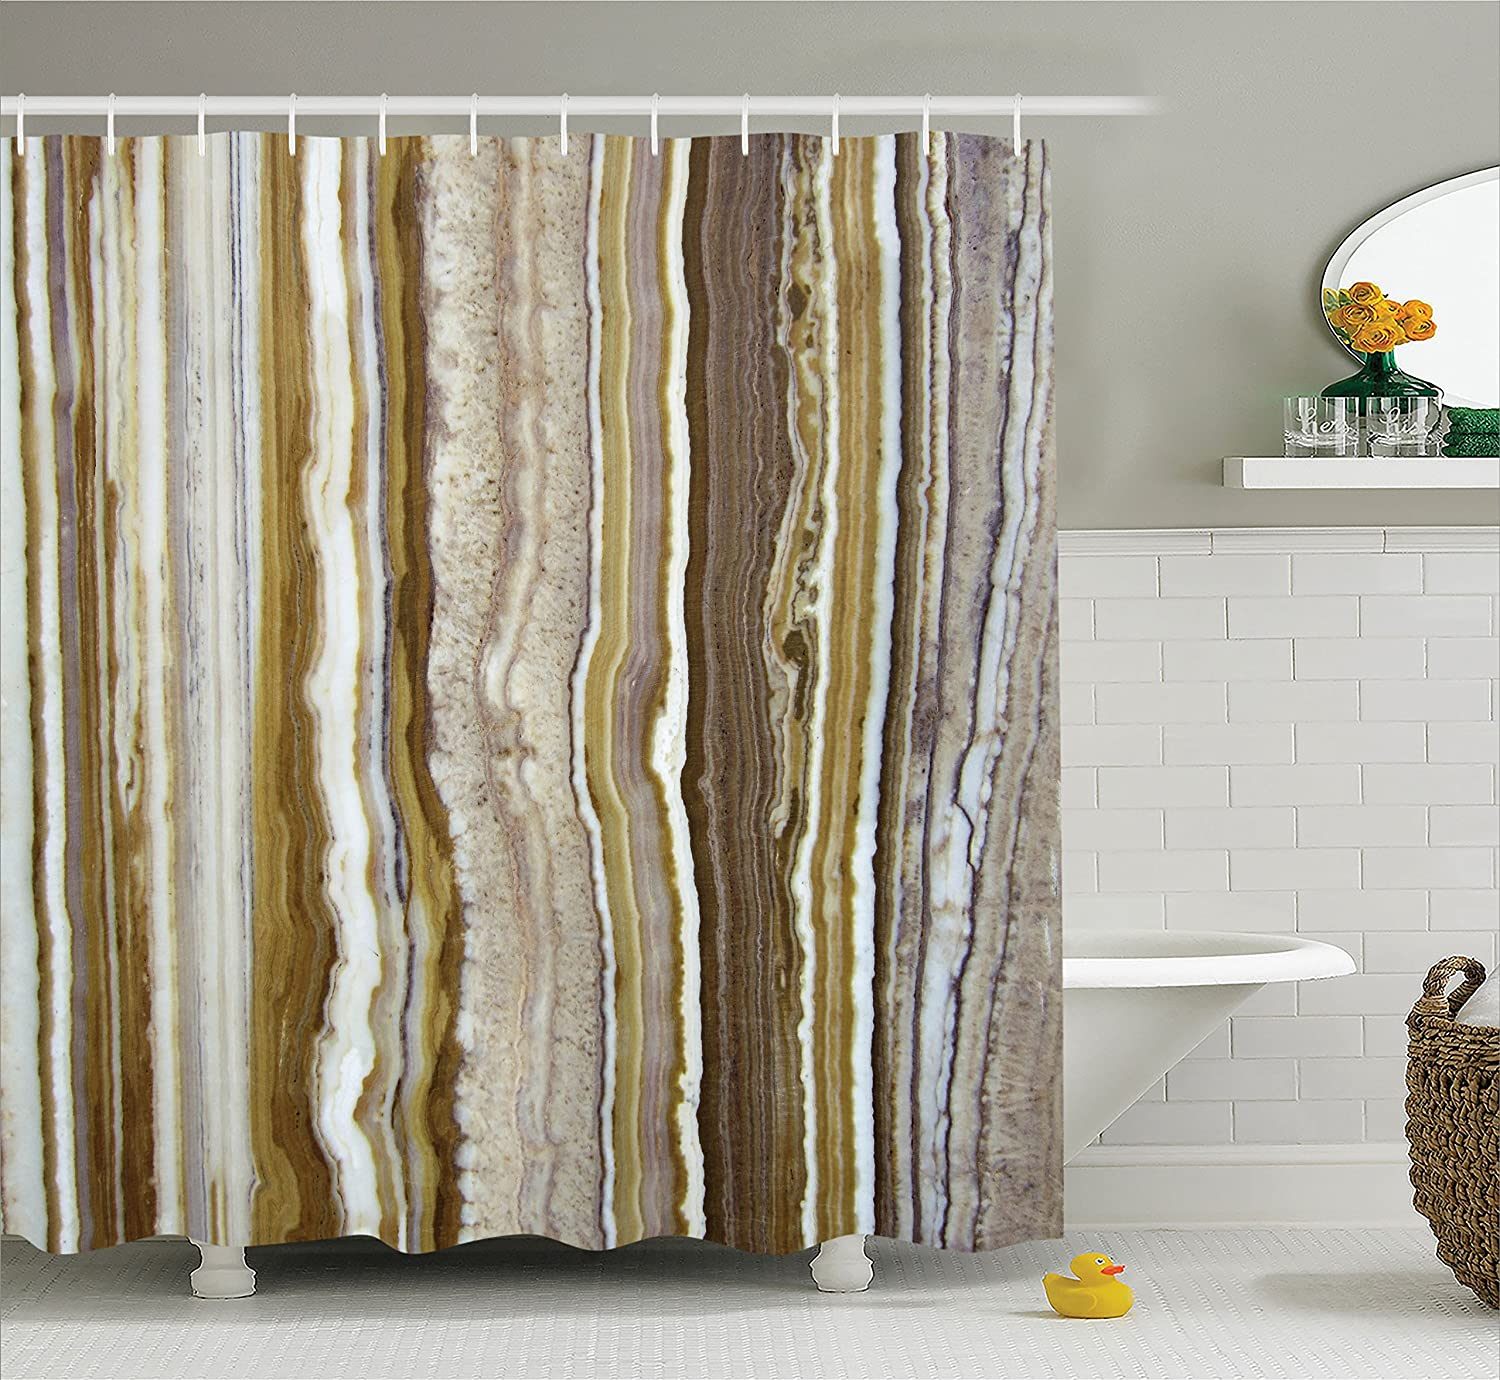 Apartment Decor Shower Curtain by Ambesonne, Onyx Marble Rock Themed Vertical Lines and Blurry Stripes Mustard Brown